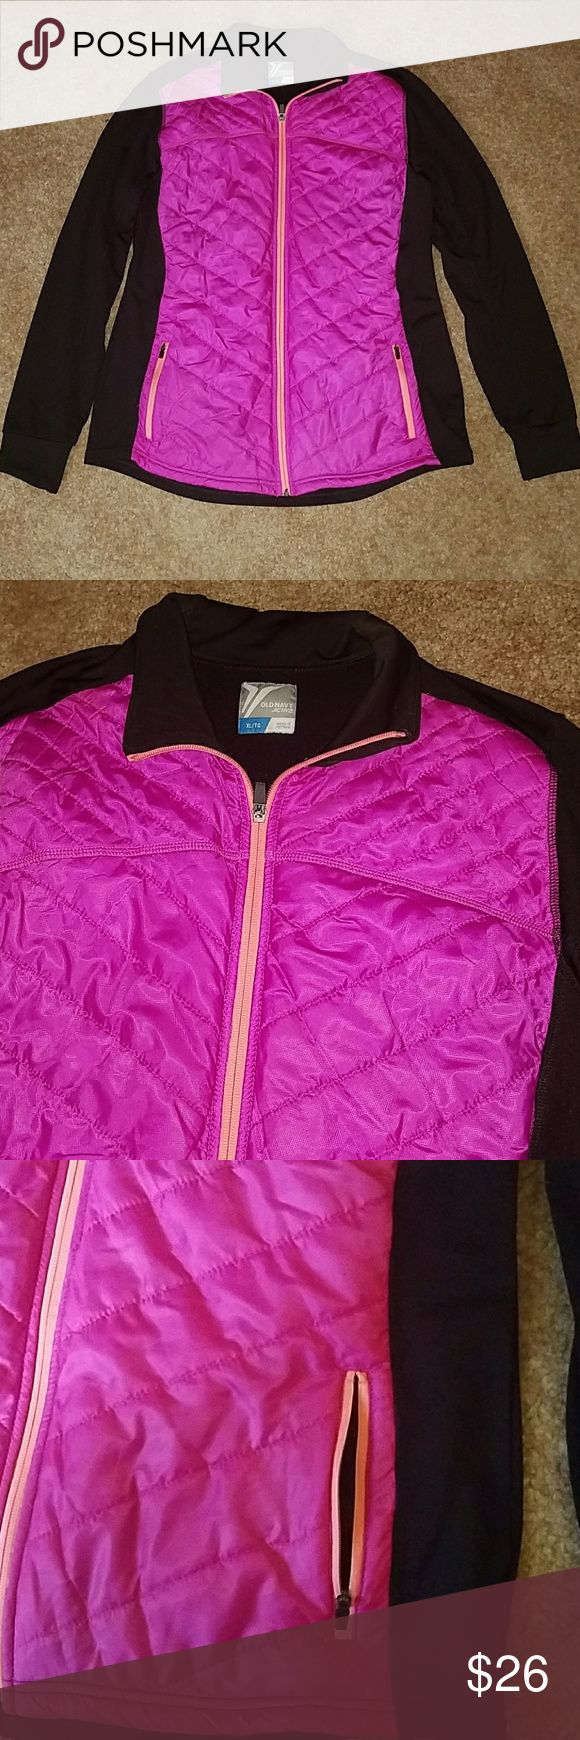 Women's Active Jacket Women's activewear jacket. Comfy and lightweight! Only worn a few times. Smoke free home. Front is bright pink and back is all black. Has two zipper pockets in front. Measures 28 inches long and 22 inches from armpit to armpit. Sleeves are 21 inches. Material is 100% polyester. Make an Offer!! Old Navy Jackets & Coats